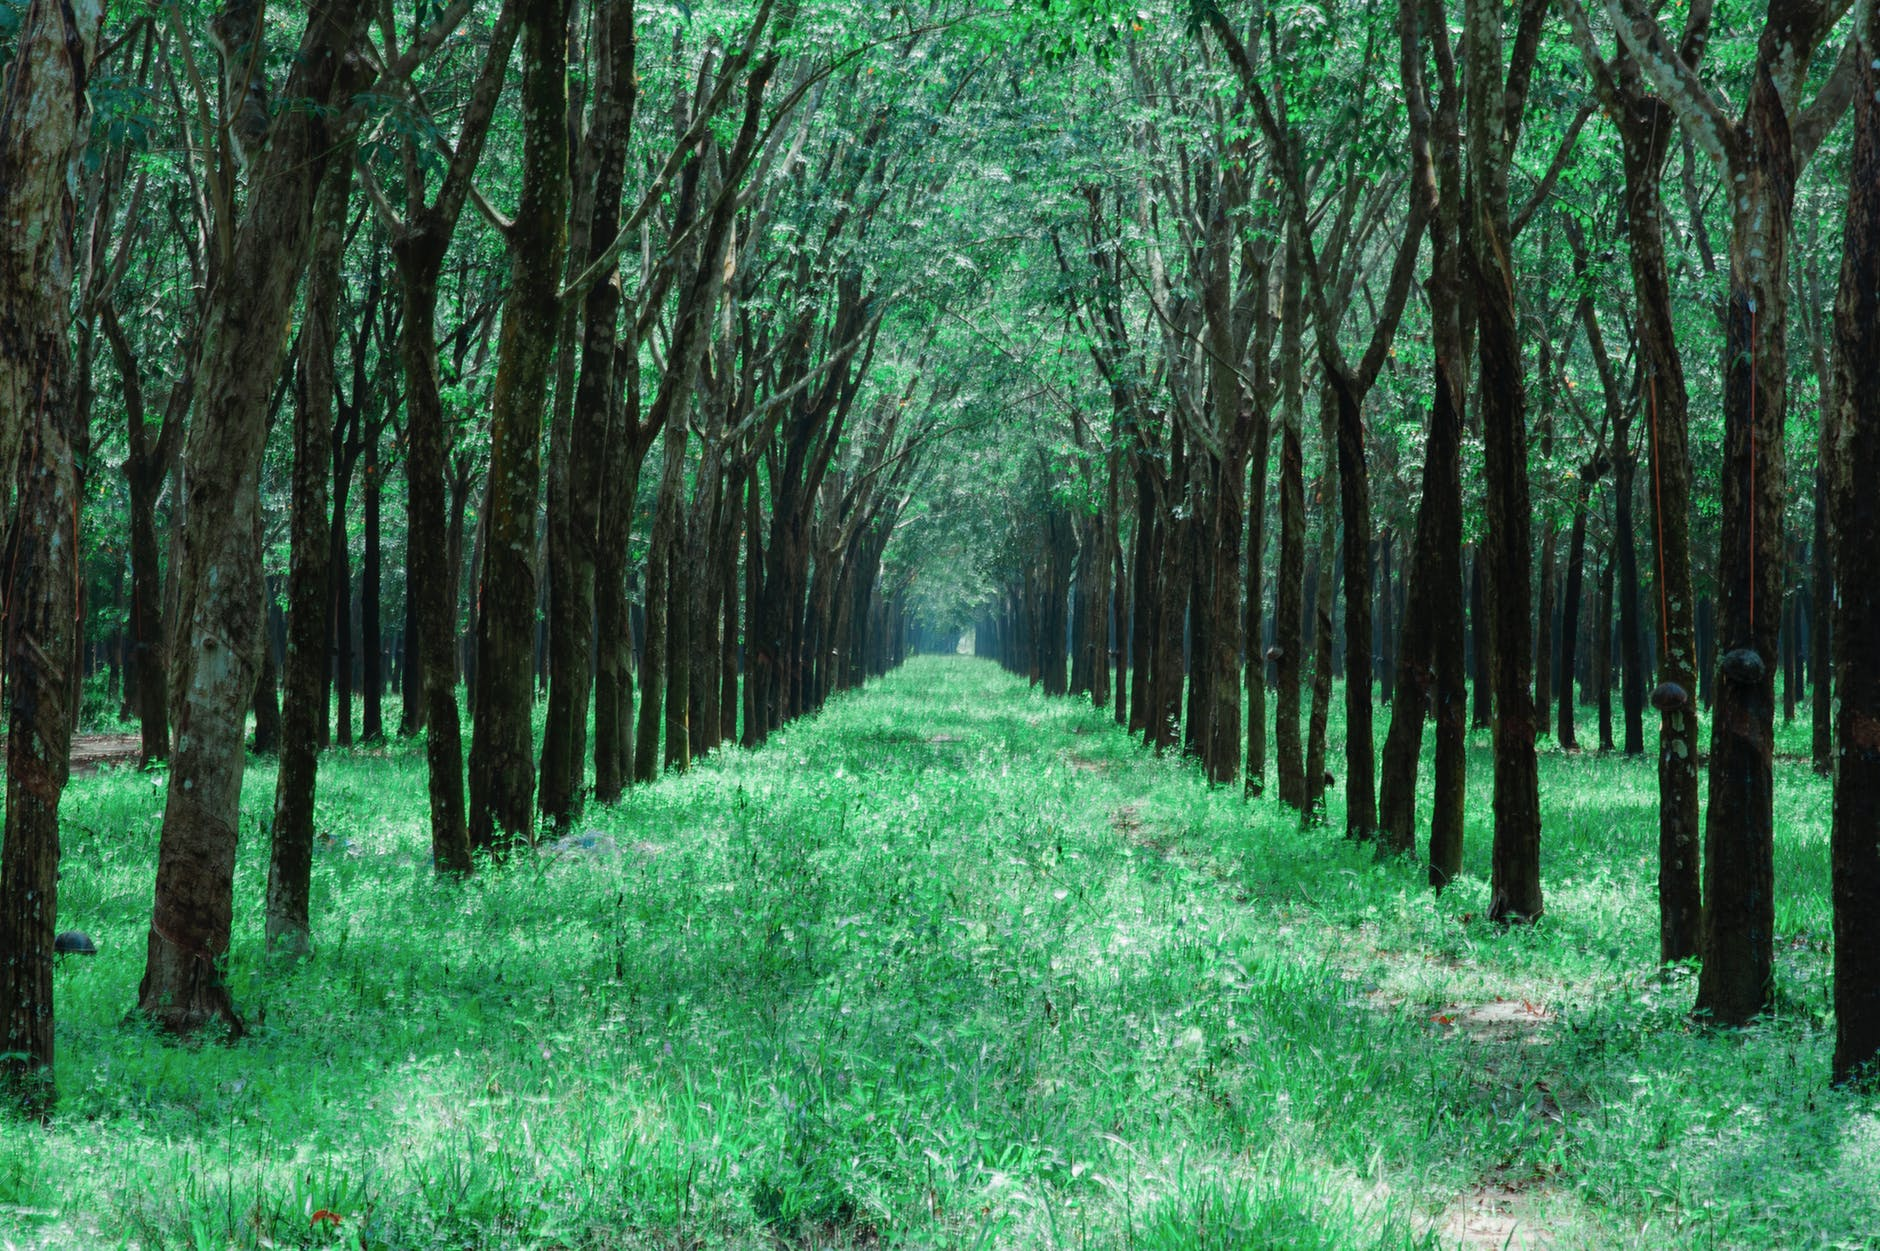 Grass pathway in the middle of trees photo